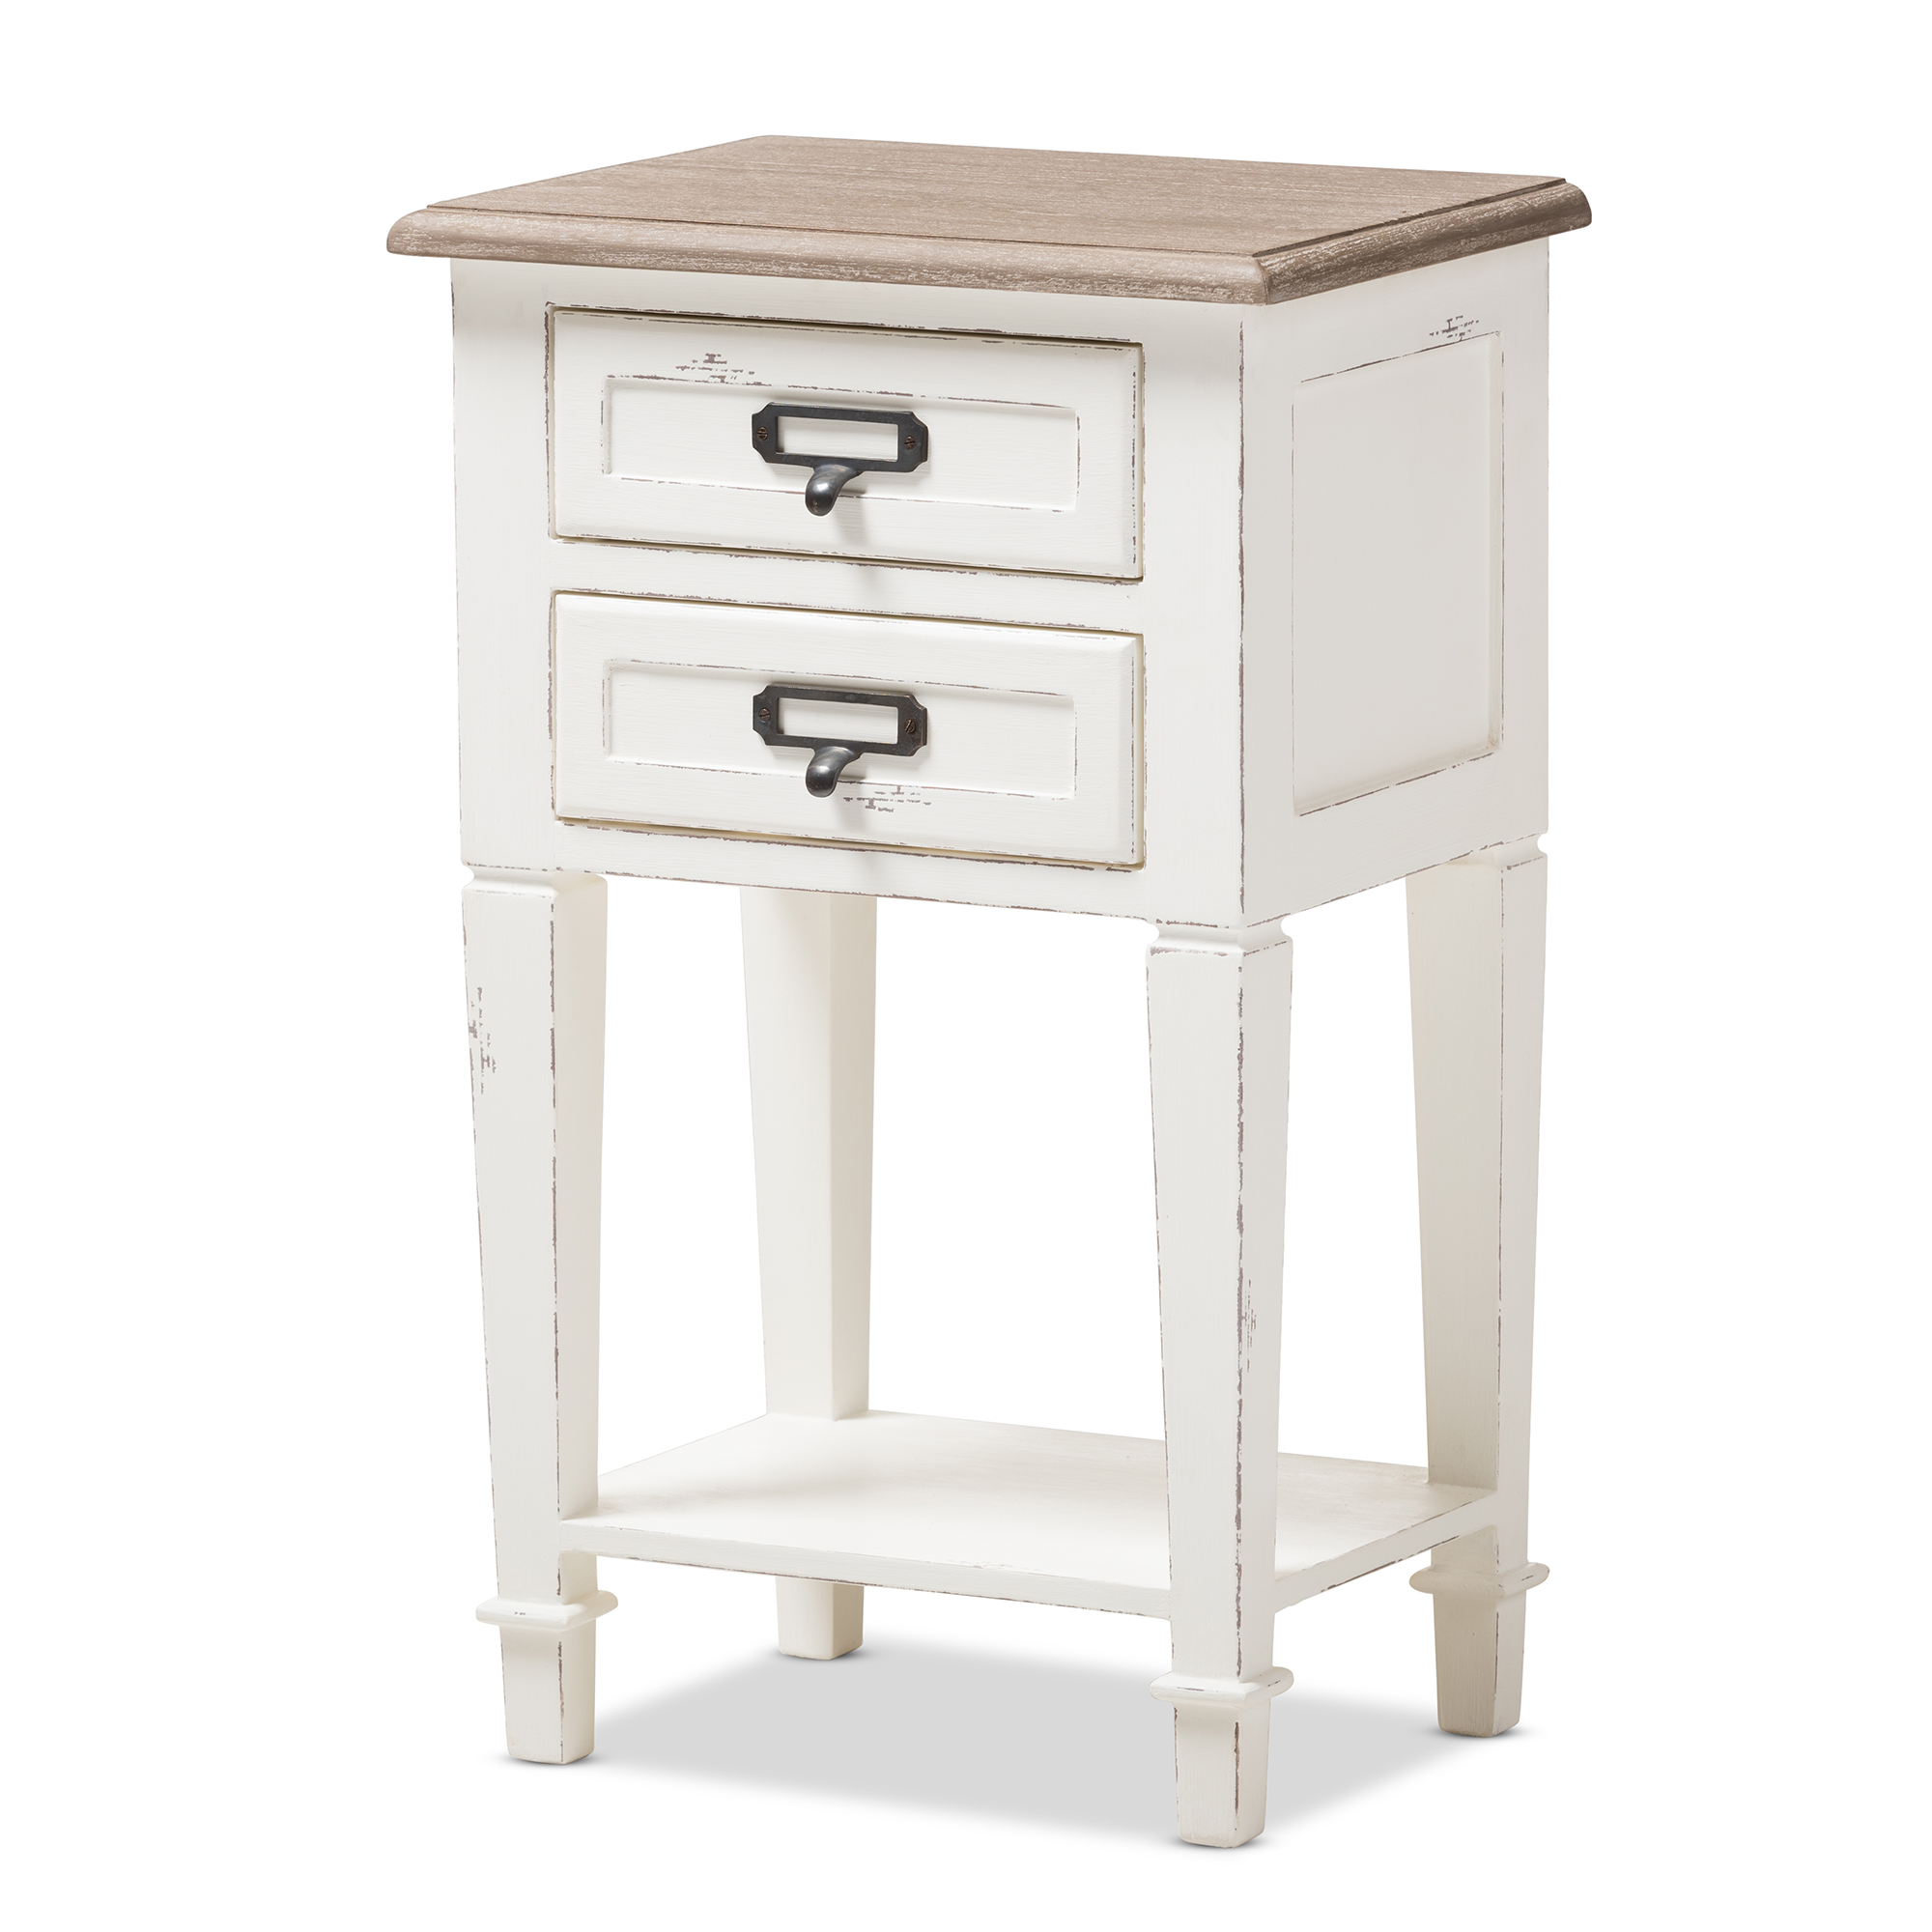 Image of Baxton Studio Dauphine Provincial Style Weathered Oak and White Wash Distressed Finish Wood Nightstand